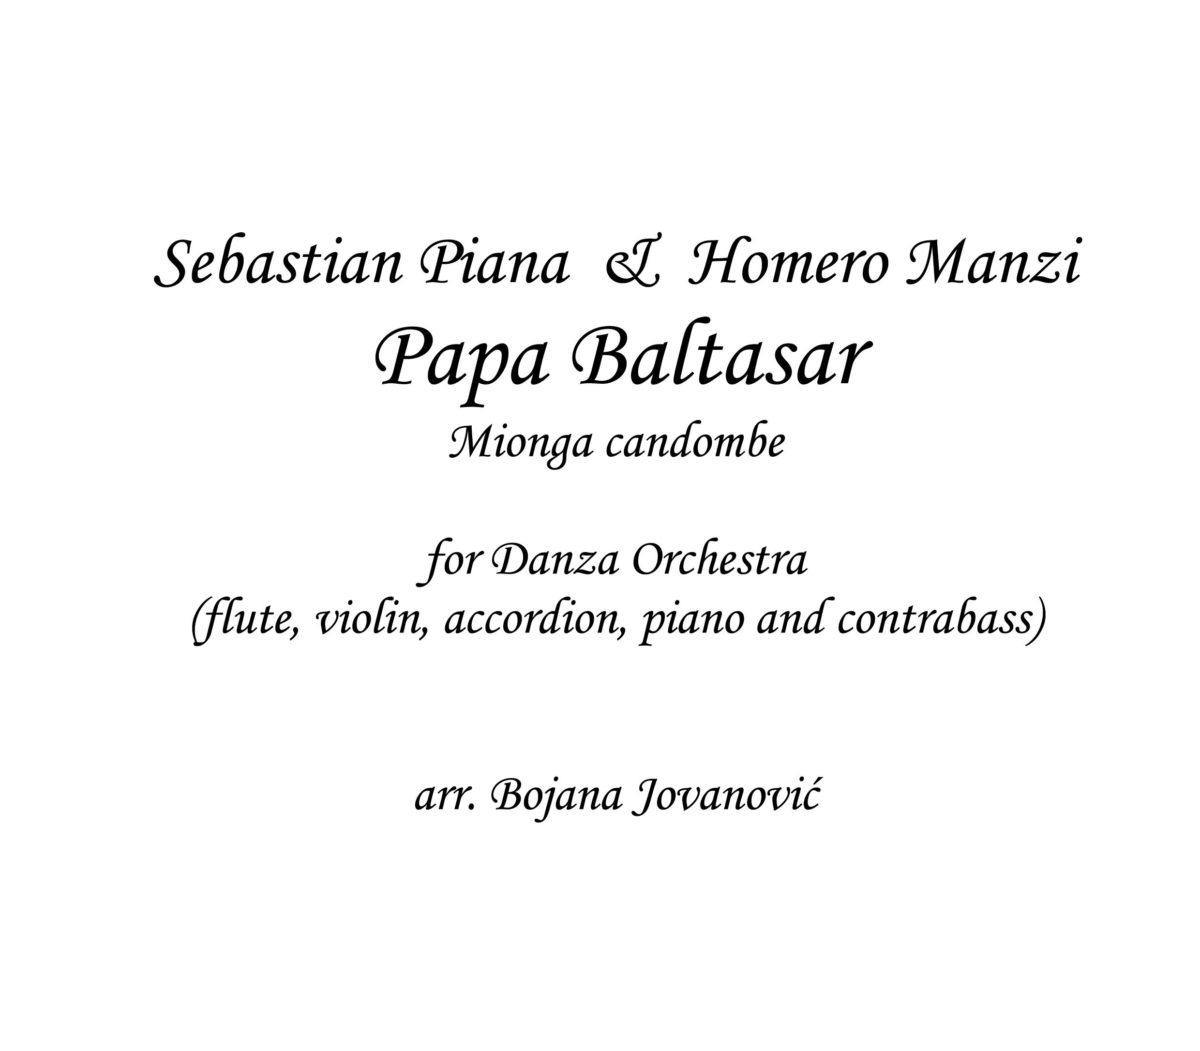 Papa Baltasar (Milonga Candombe) - Sheet Music